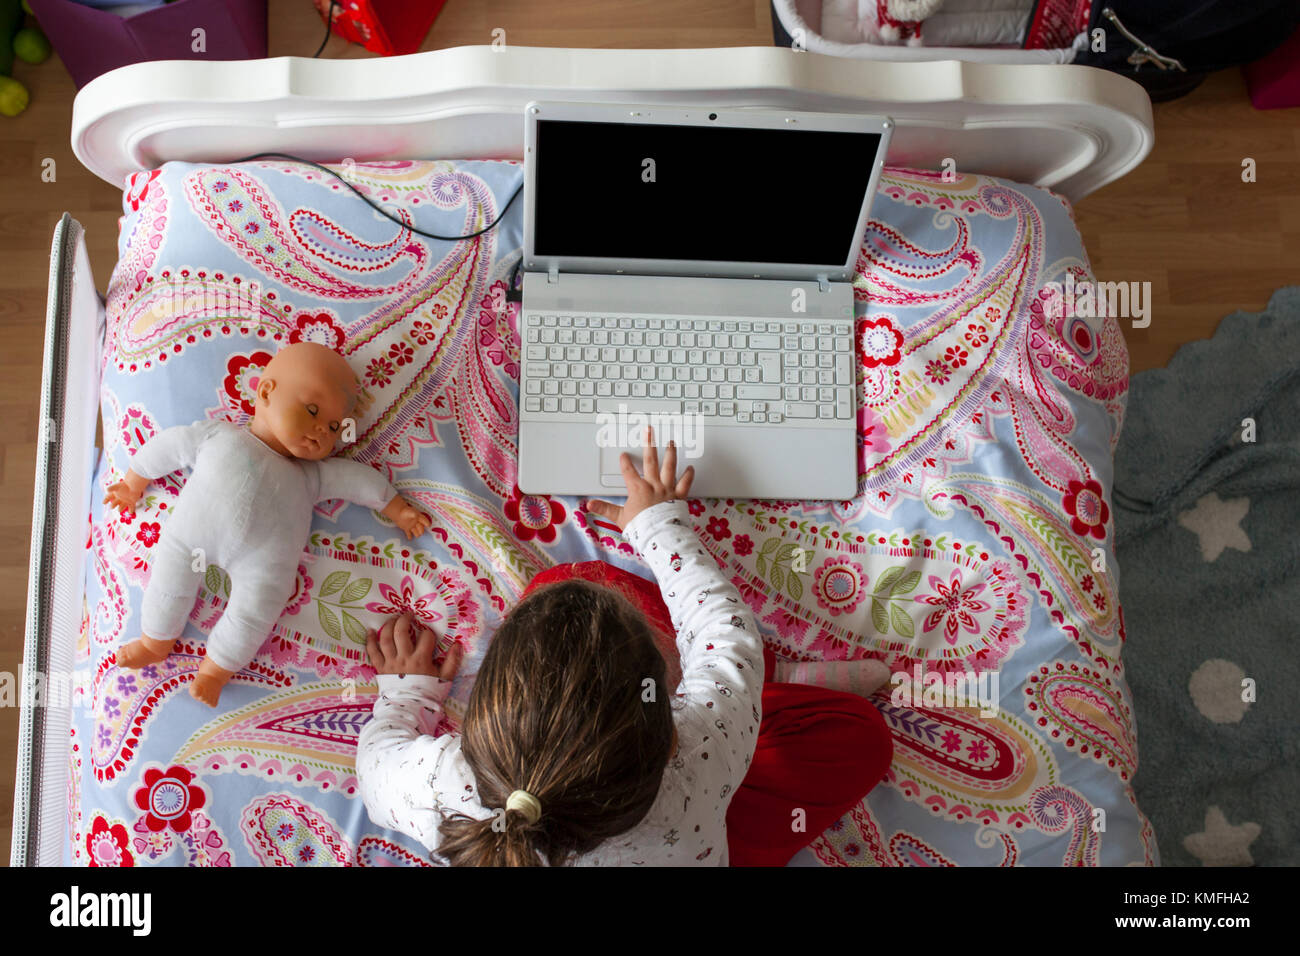 Little Girl Sitting In Bed And Playing Online Games In Her Bedroom